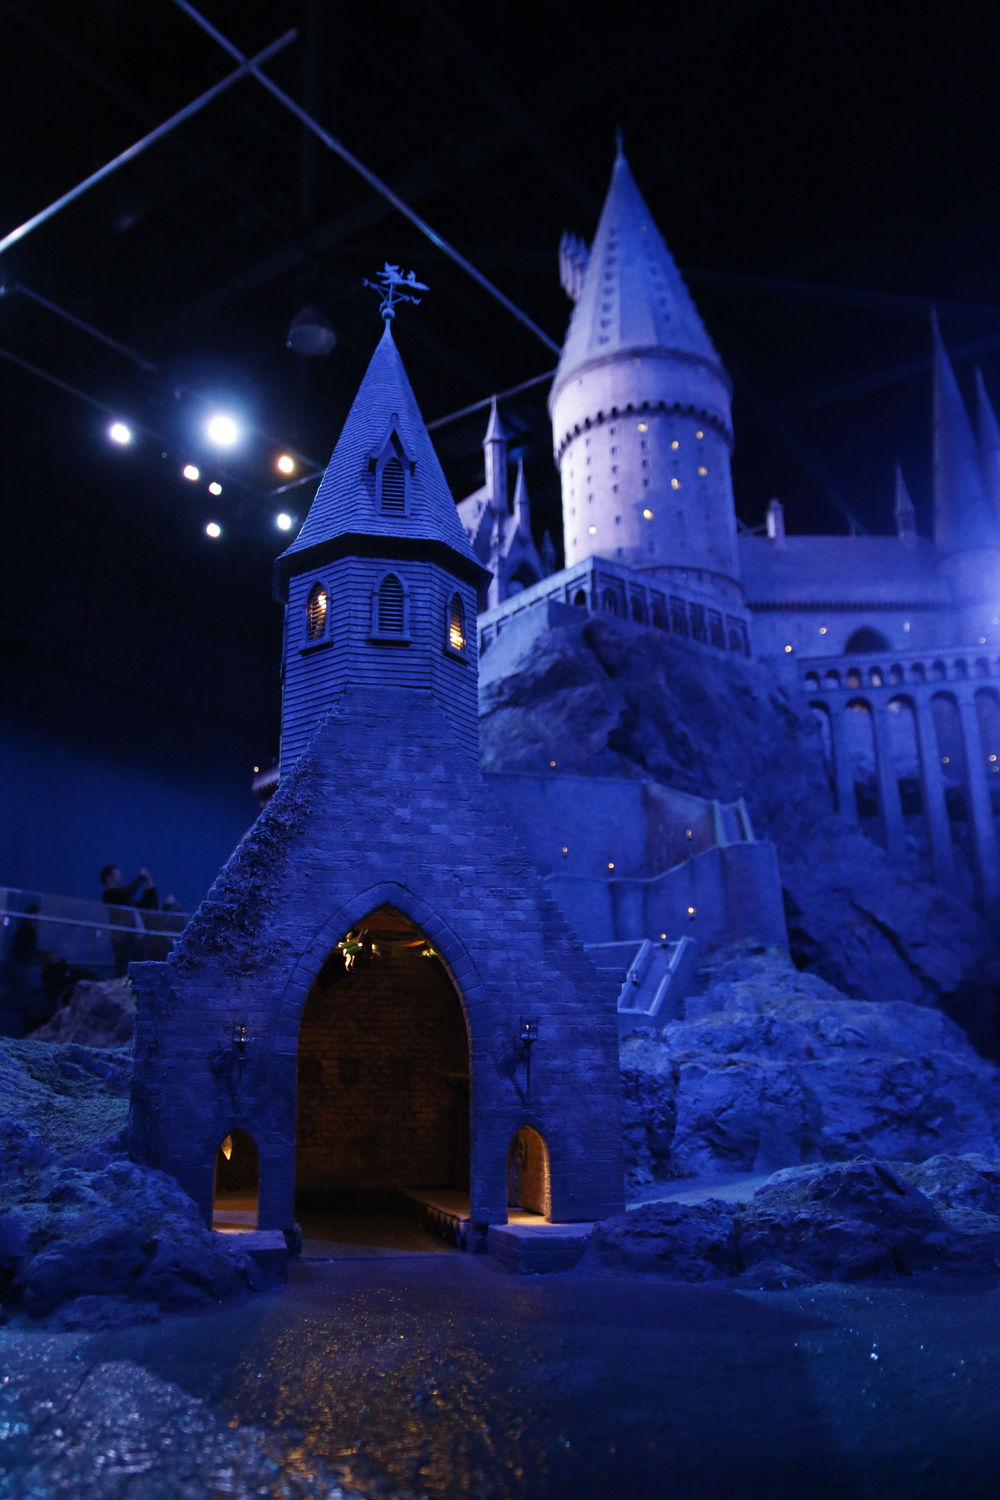 They also show what the castle looks like at night, with hundreds of real working lights wired inside.